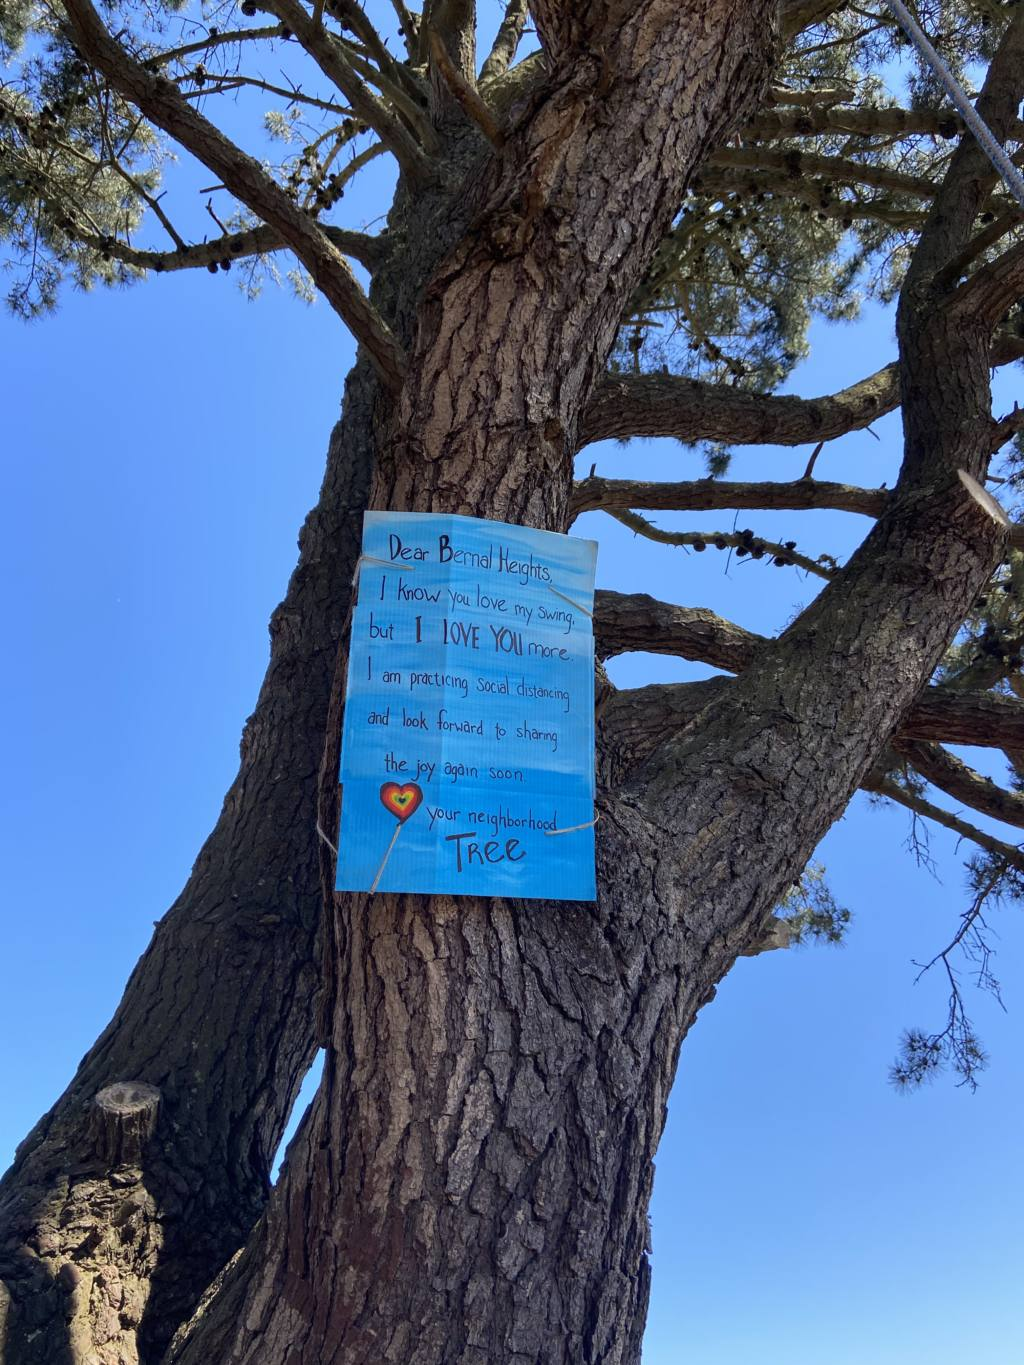 Snap: Note from a tree